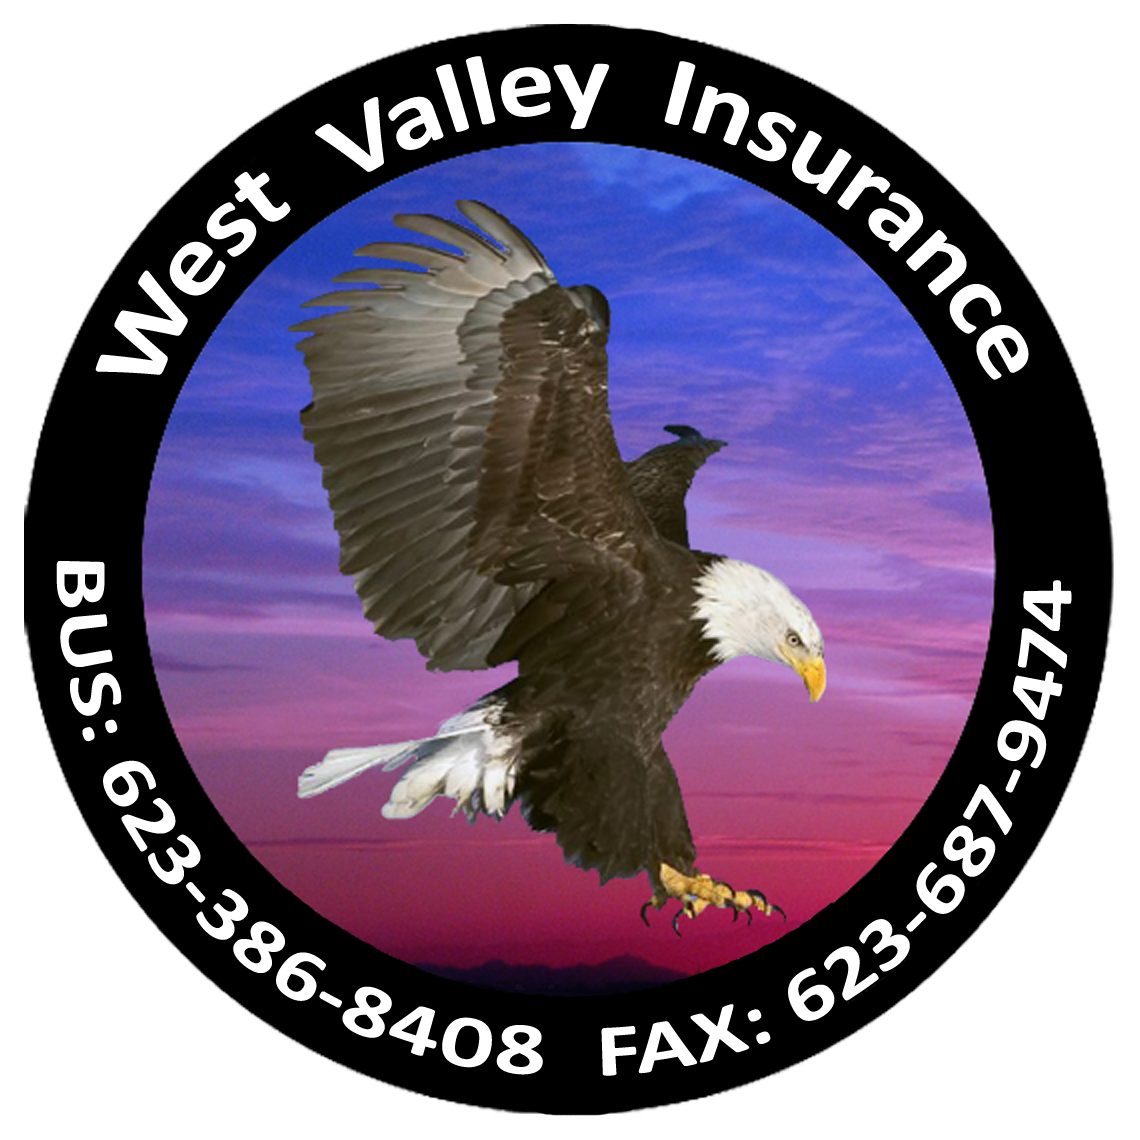 Wet Valley Insurance Agency